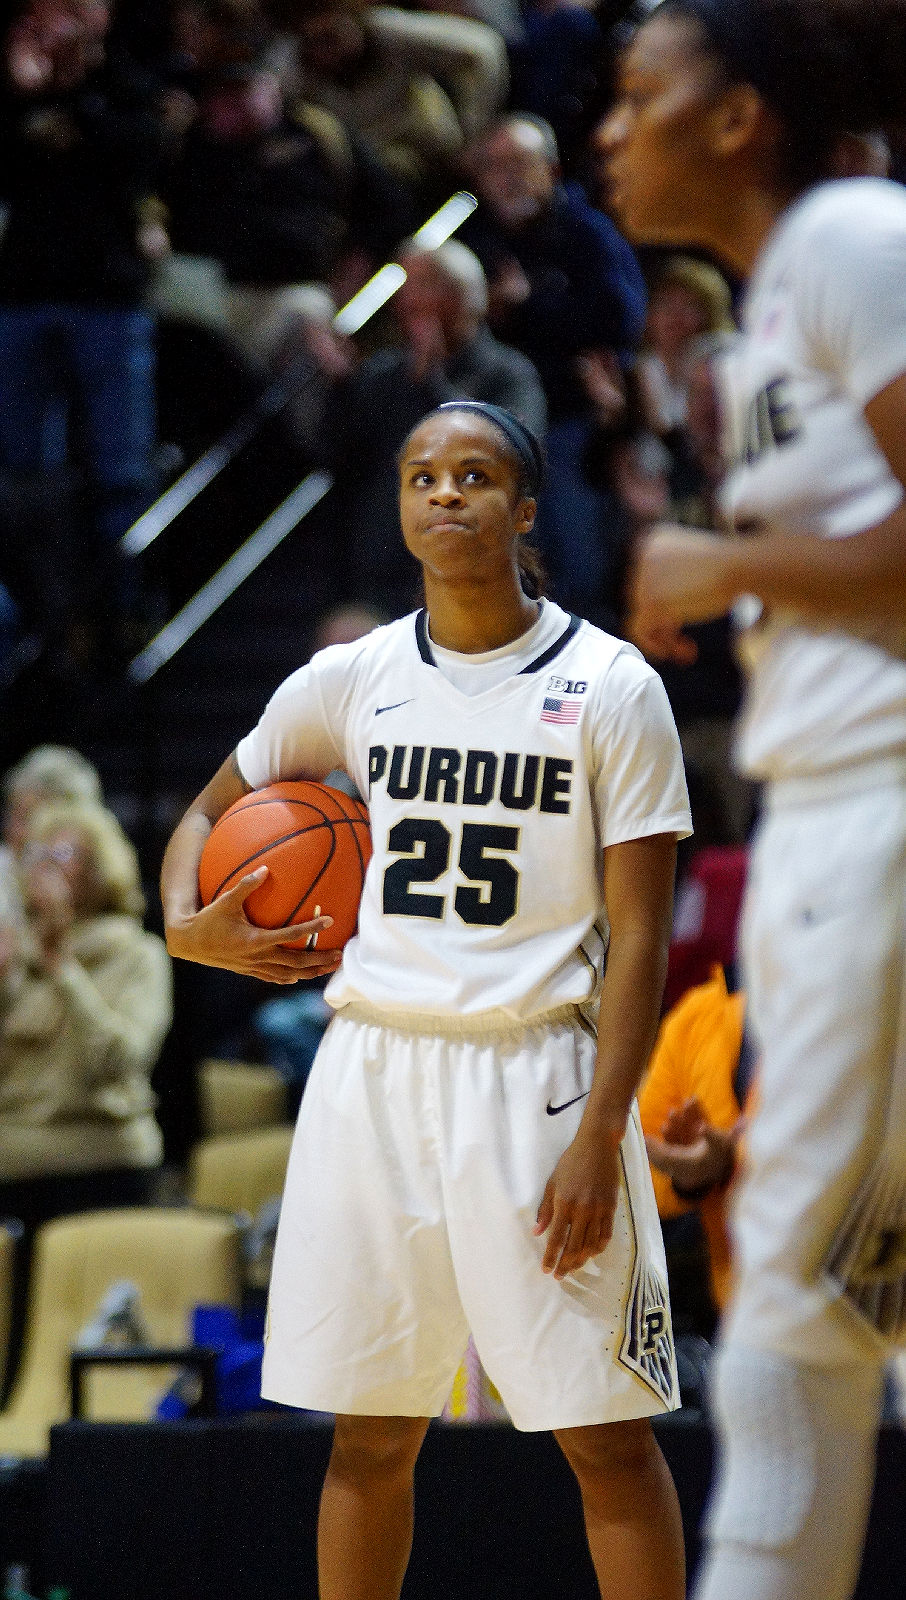 Gallery NCAA Women's Basketball: Purdue 63 Vs Indiana 53